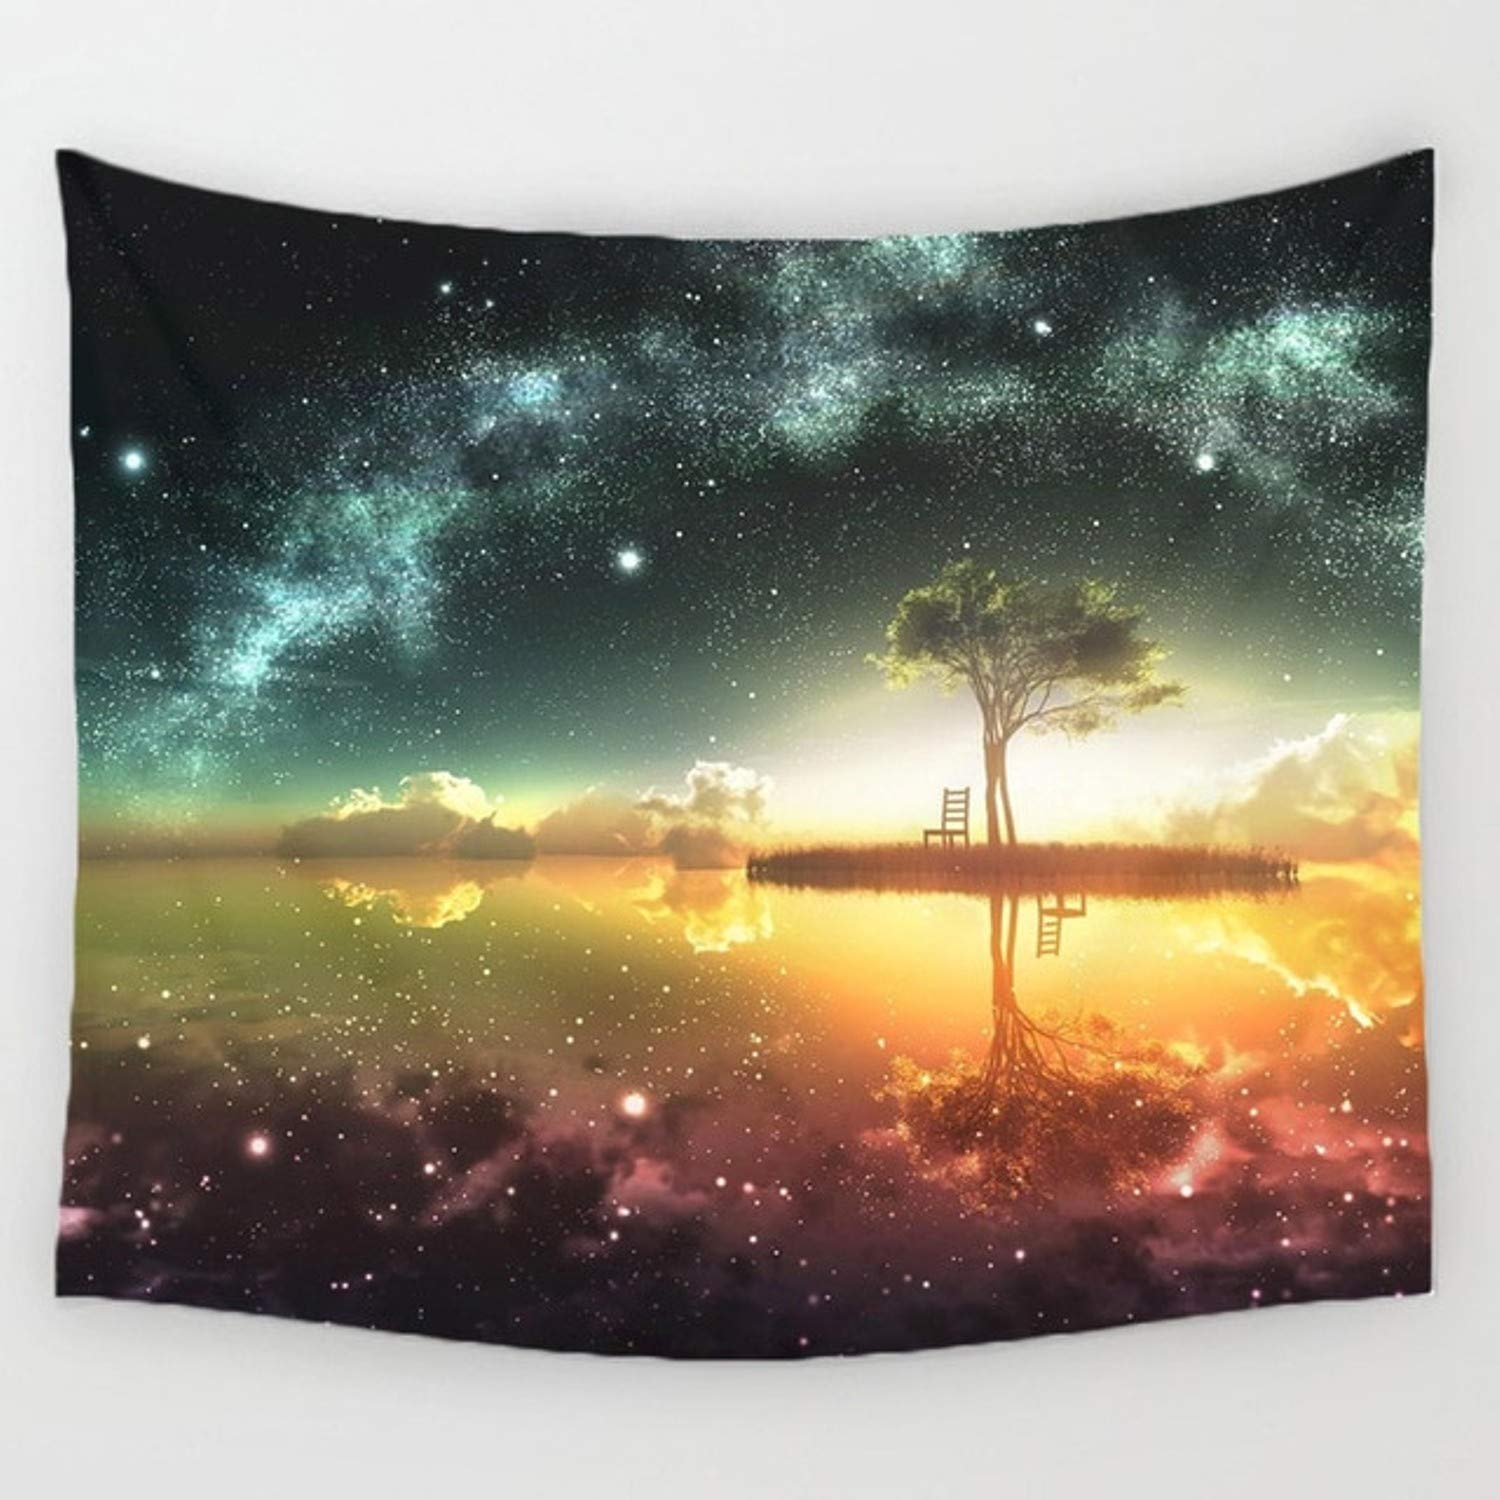 Amazon.com: Chitop Night Scenic Tapestry Wall Hanging Decor - Star Plant Printed Carpet Home Decor - Hanging Living Printing Wall Tapestry (150x130cm) ...